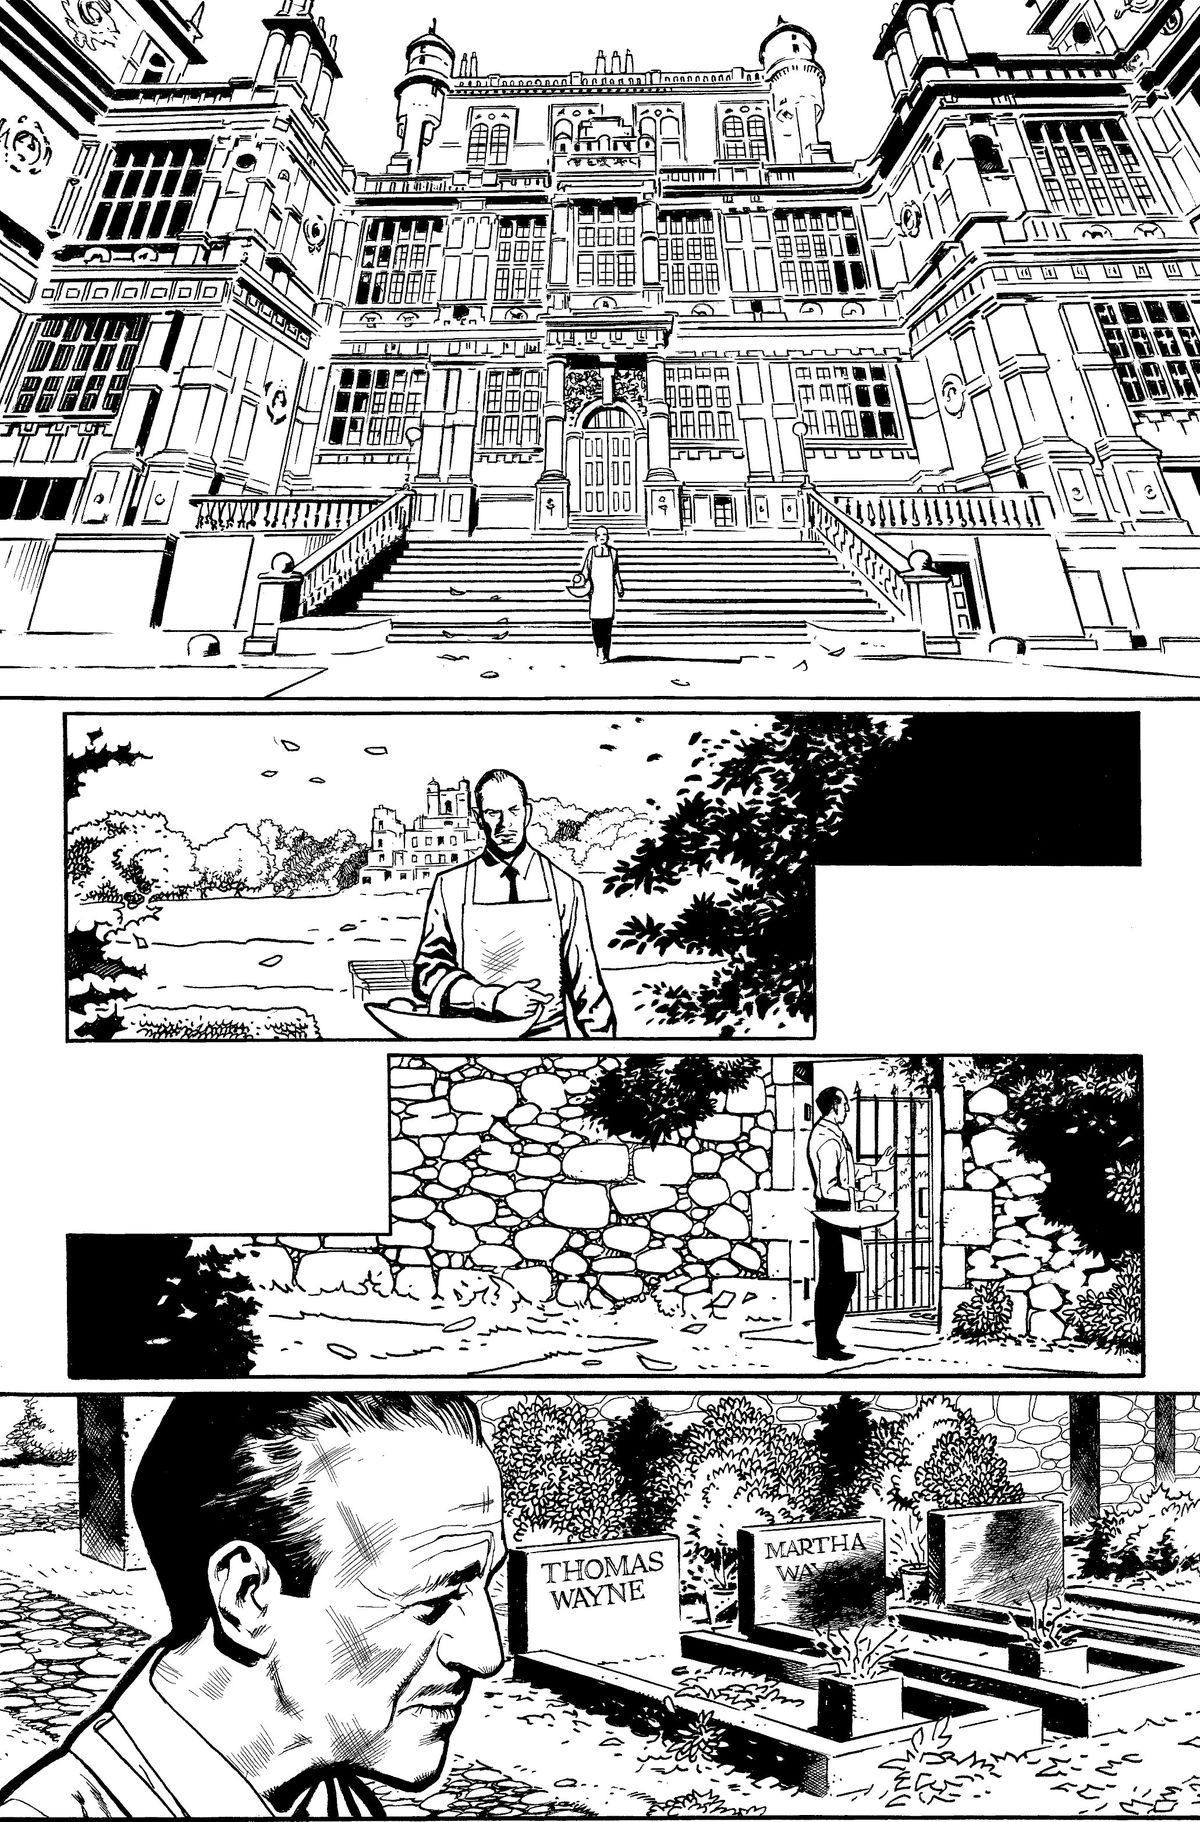 Alfred walks out of Wayne Manor and to the Wayne grave plot on the grounds, in unfinished art from The Batman's Grave, DC Comics (2019).